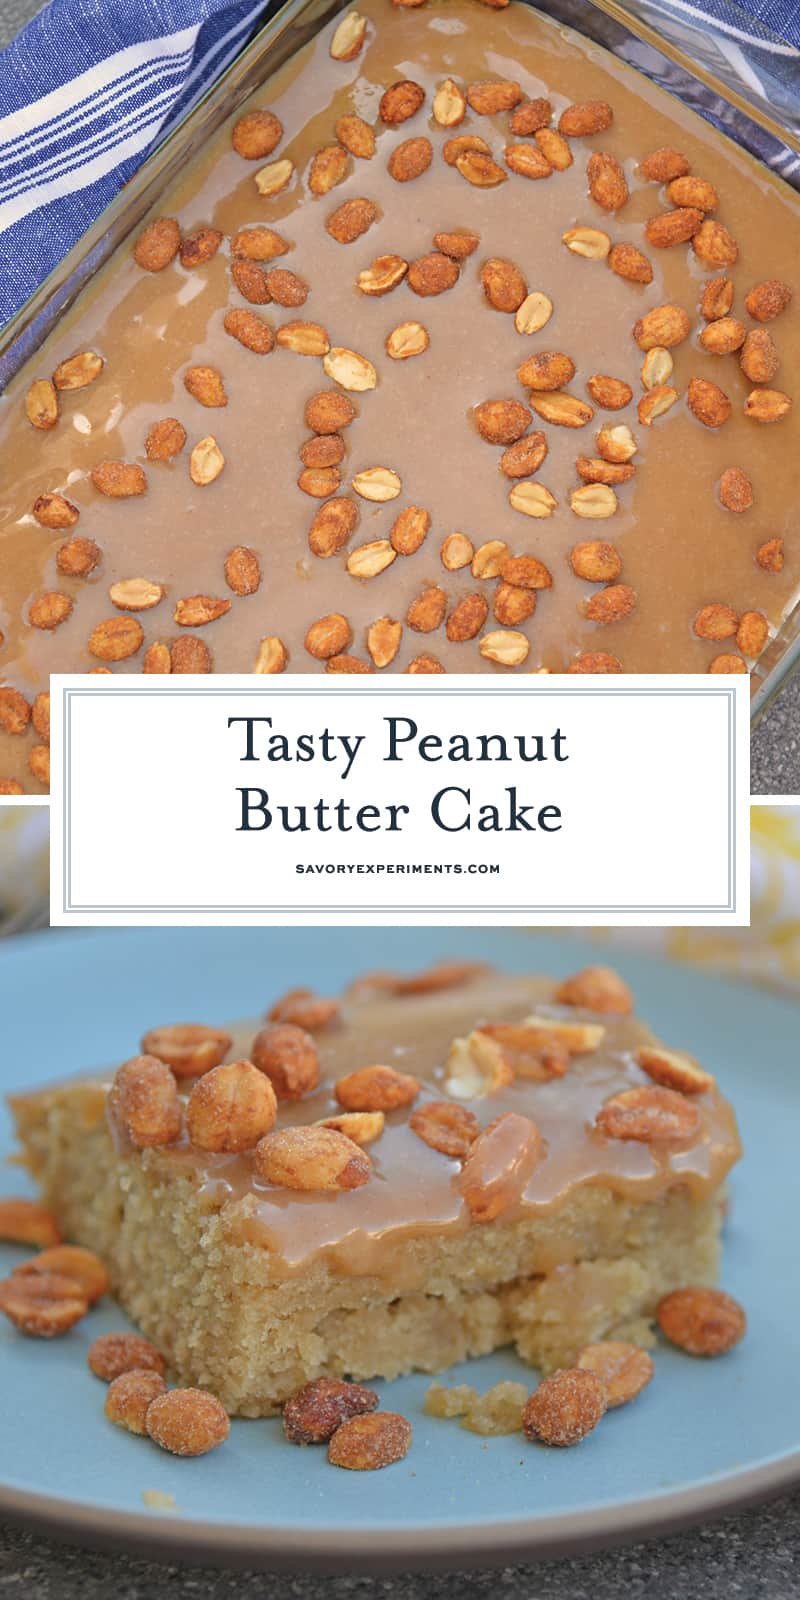 Peanut Butter Cake with Peanut Butter Marshmallow Frosting and honey roasted peanuts is an easy cake recipe that is moist and perfect for any occasion. #peanutbuttercake www.savoryexperiments.com